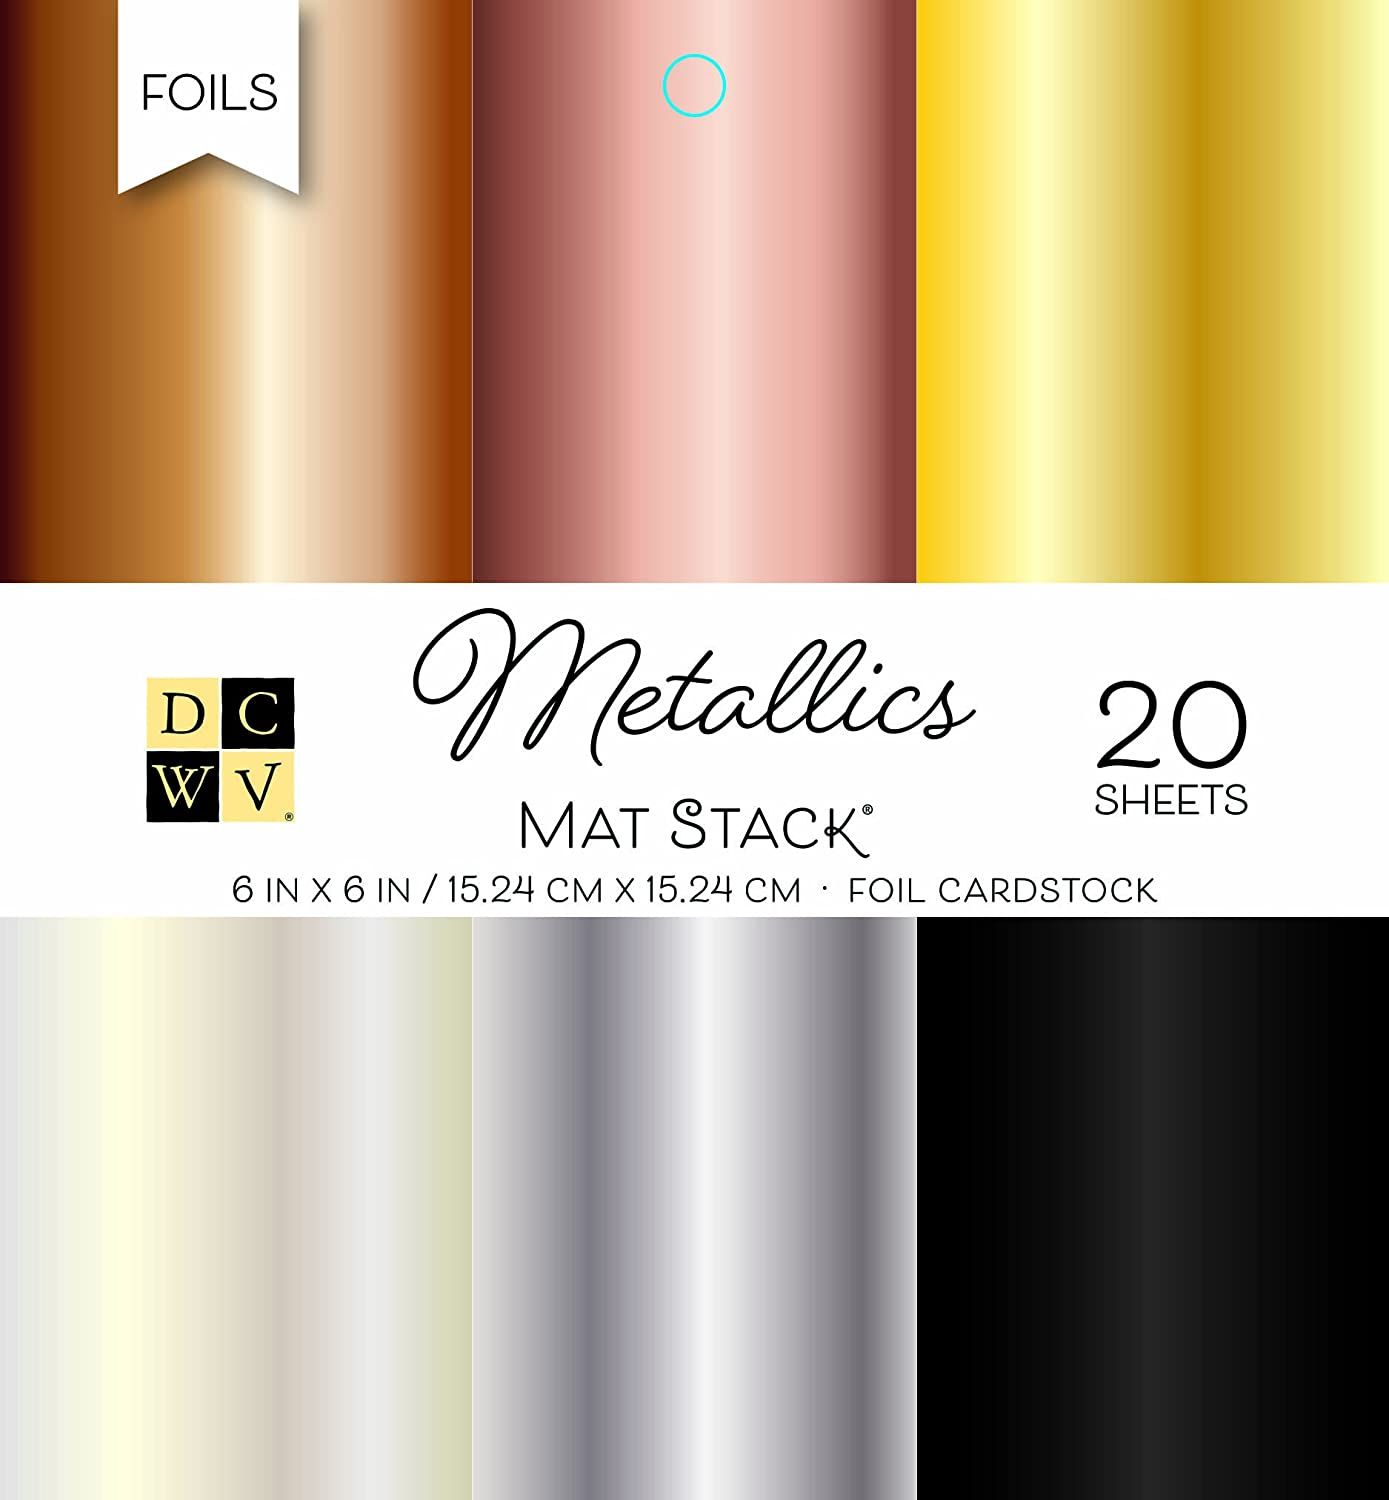 American Crafts Card Stock Dcwv 6X6 Cardstock Stack: Metallics Die Cuts With A View PS-006-00101